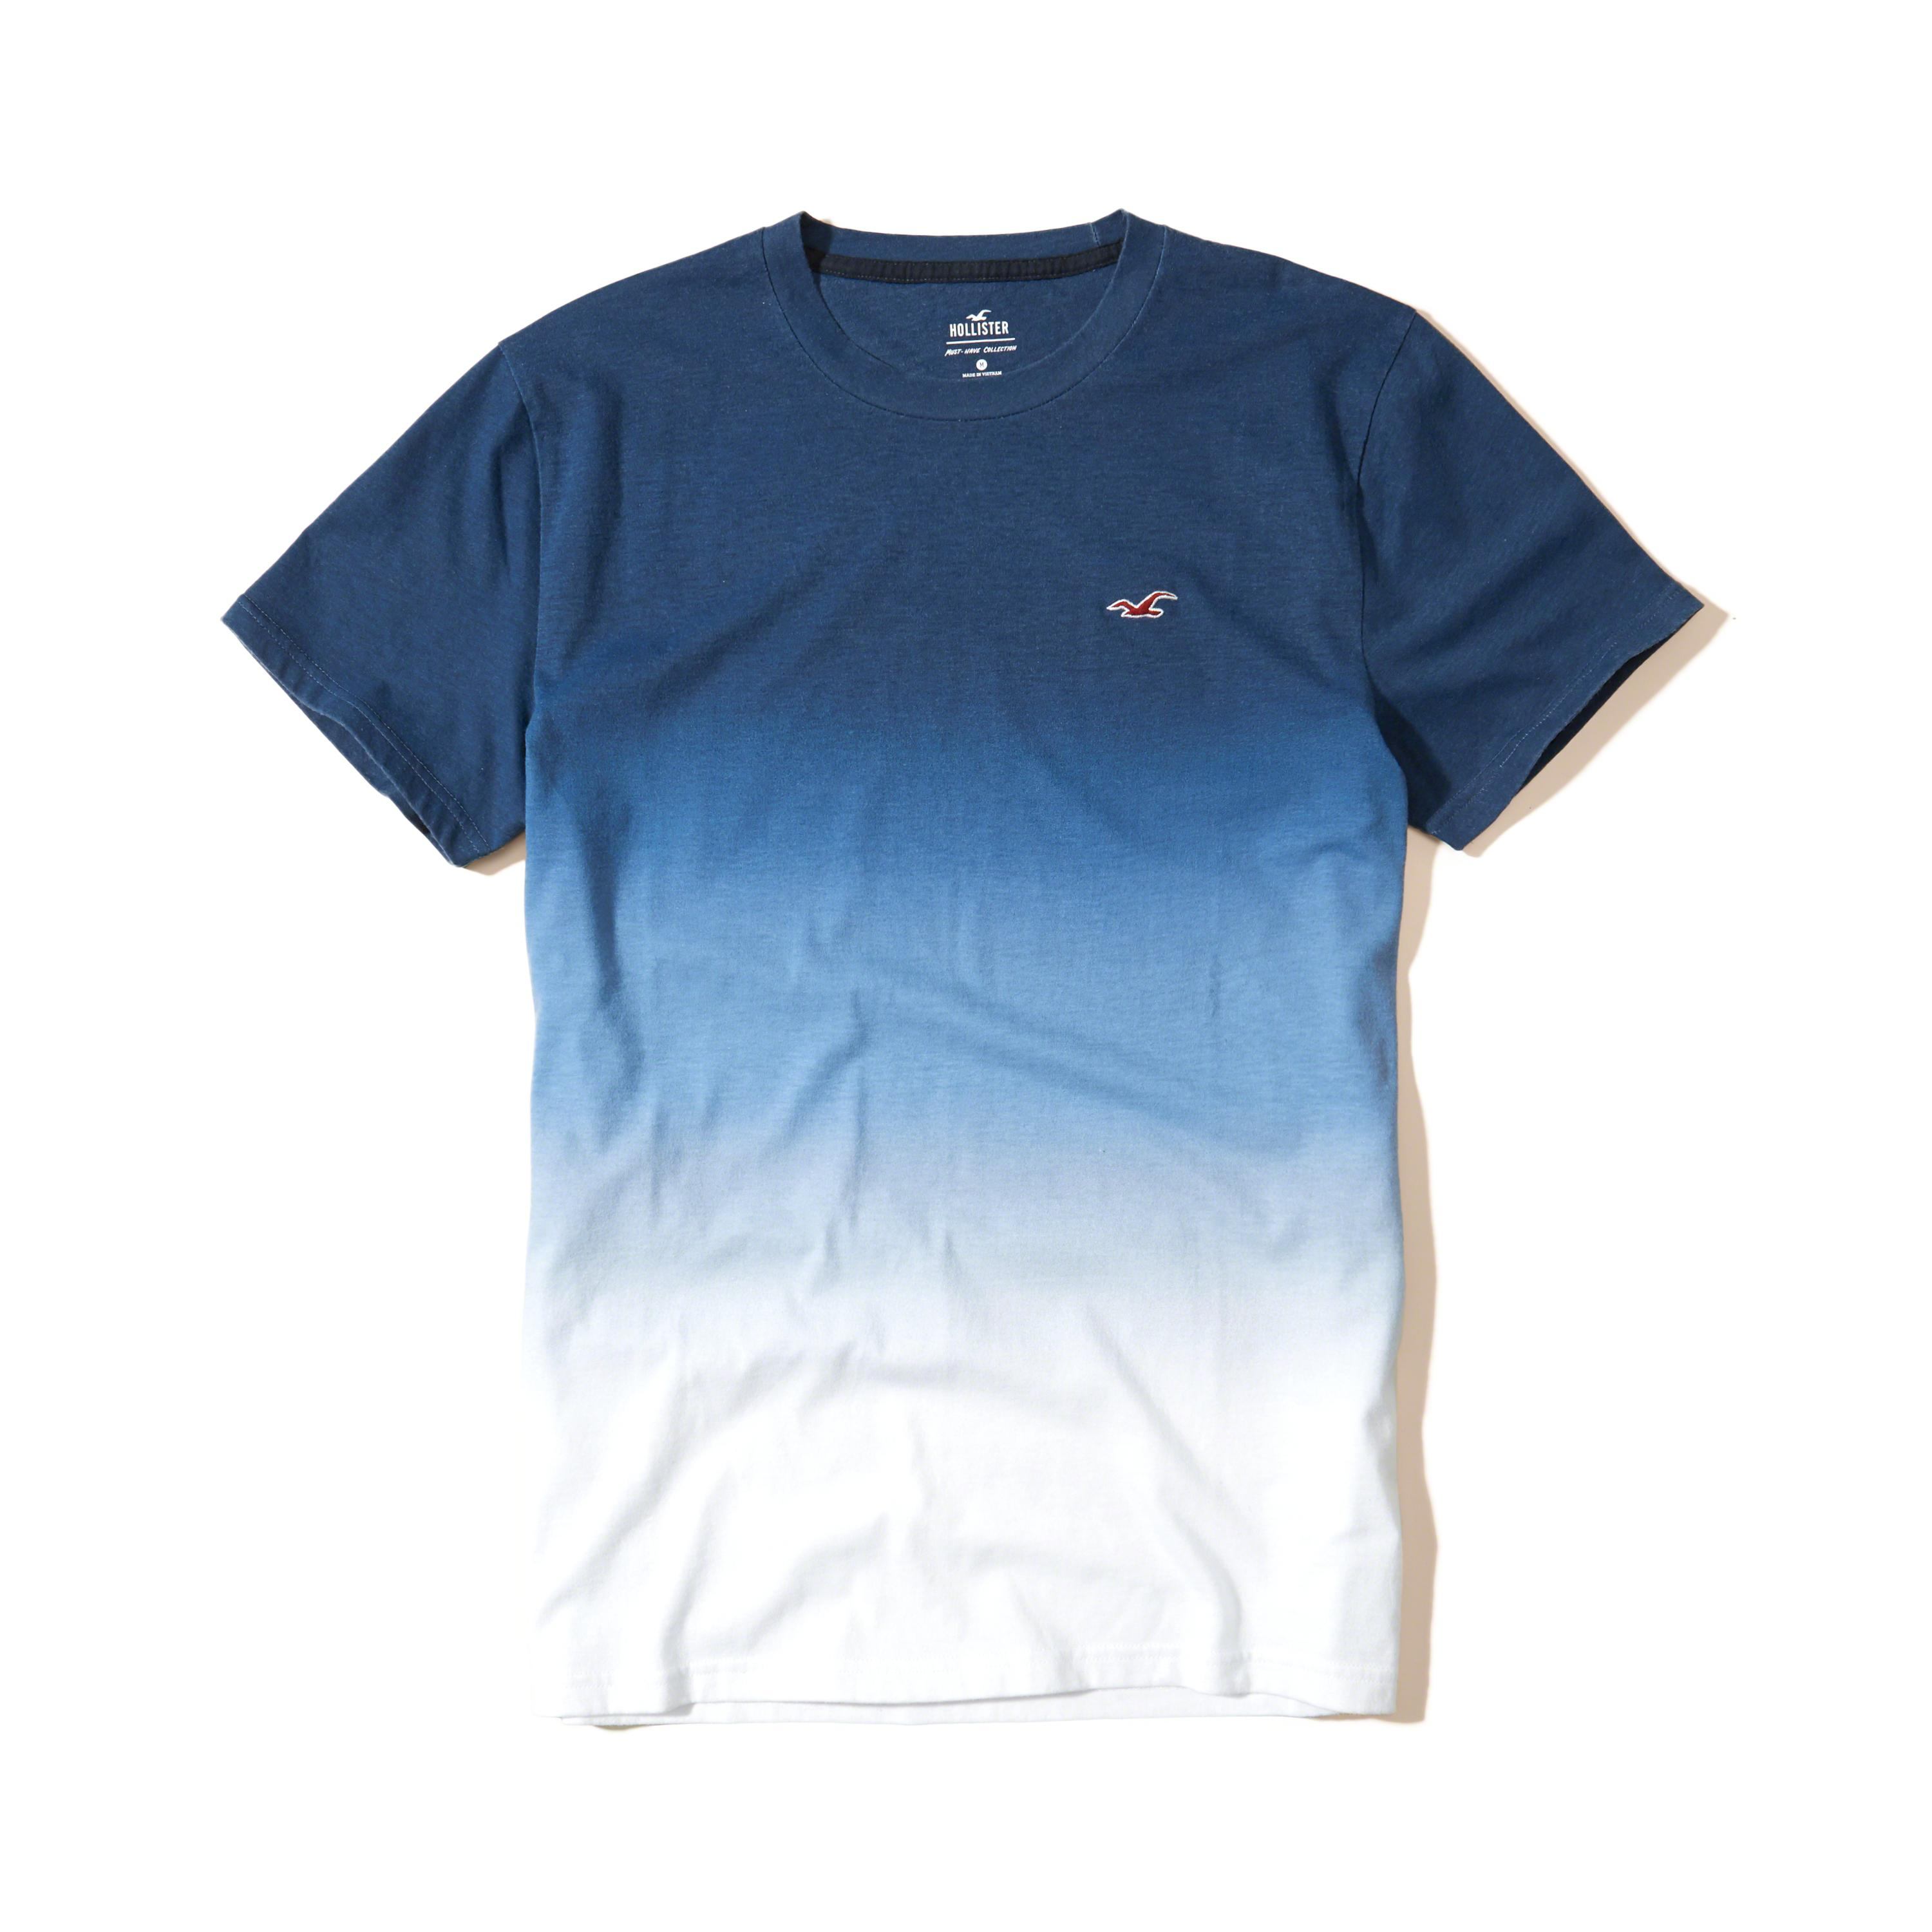 lyst hollister must have ombre crew t shirt in blue for men. Black Bedroom Furniture Sets. Home Design Ideas